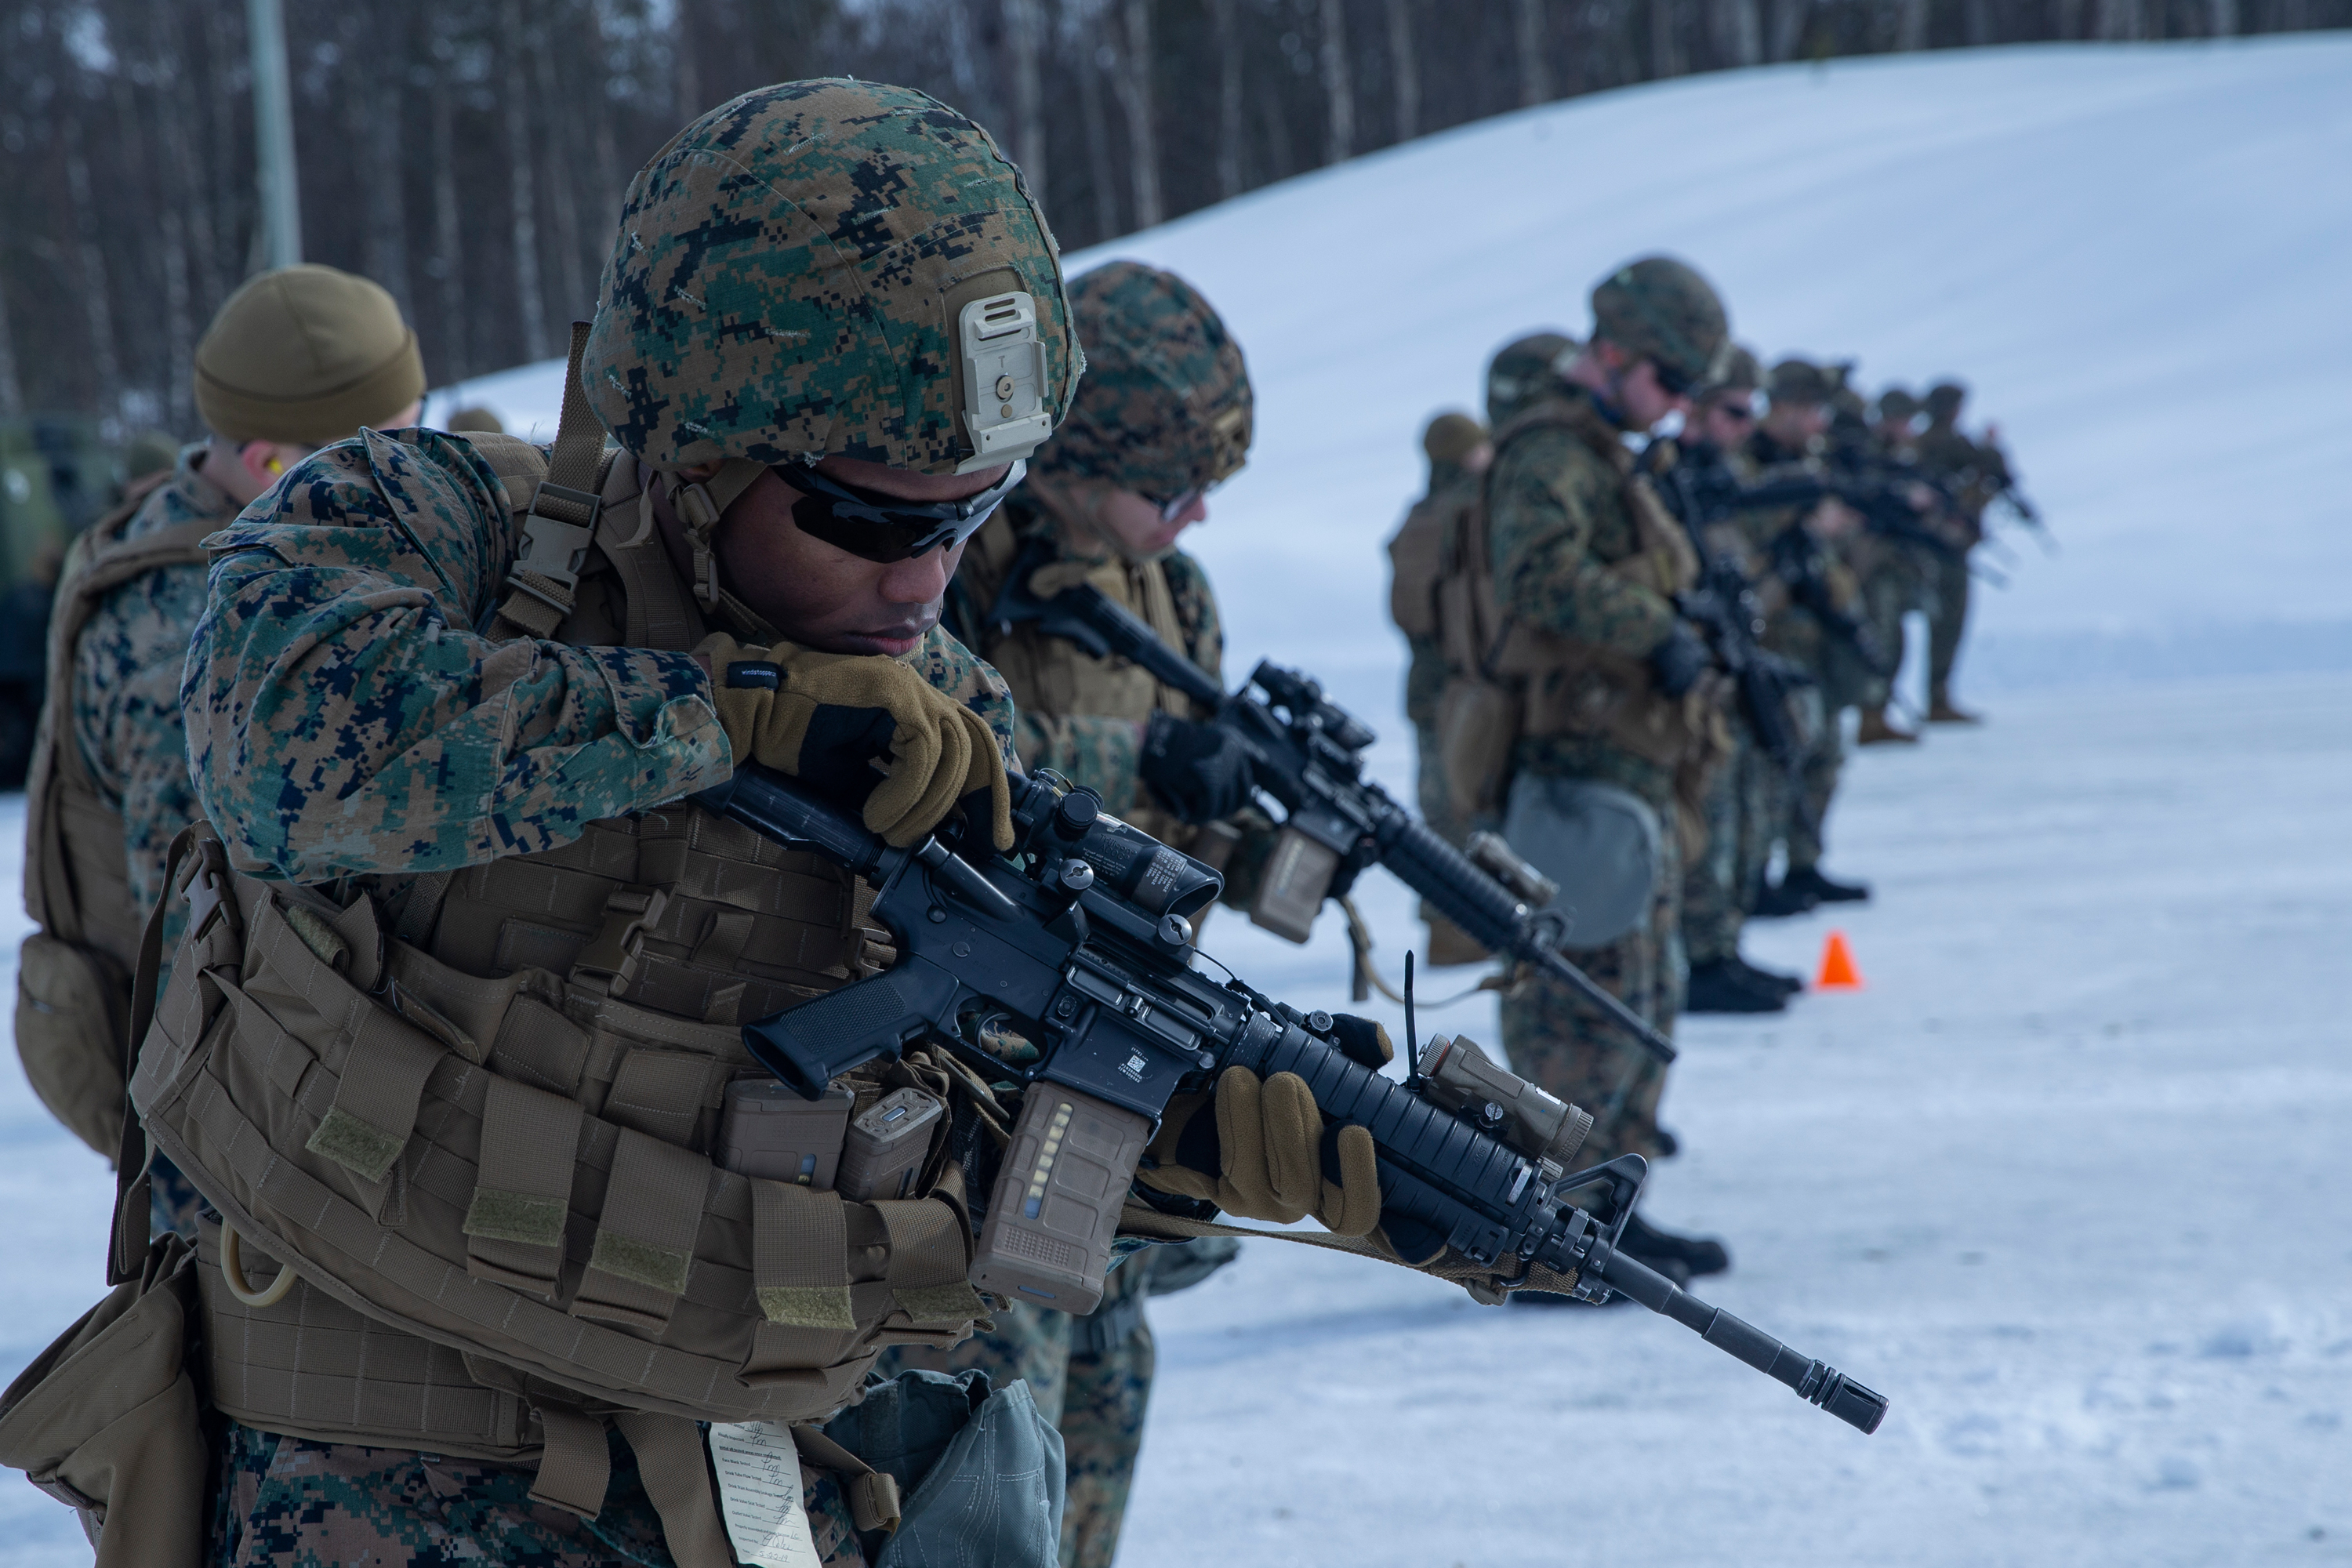 Major Changes Coming for Marines Norway Deployments